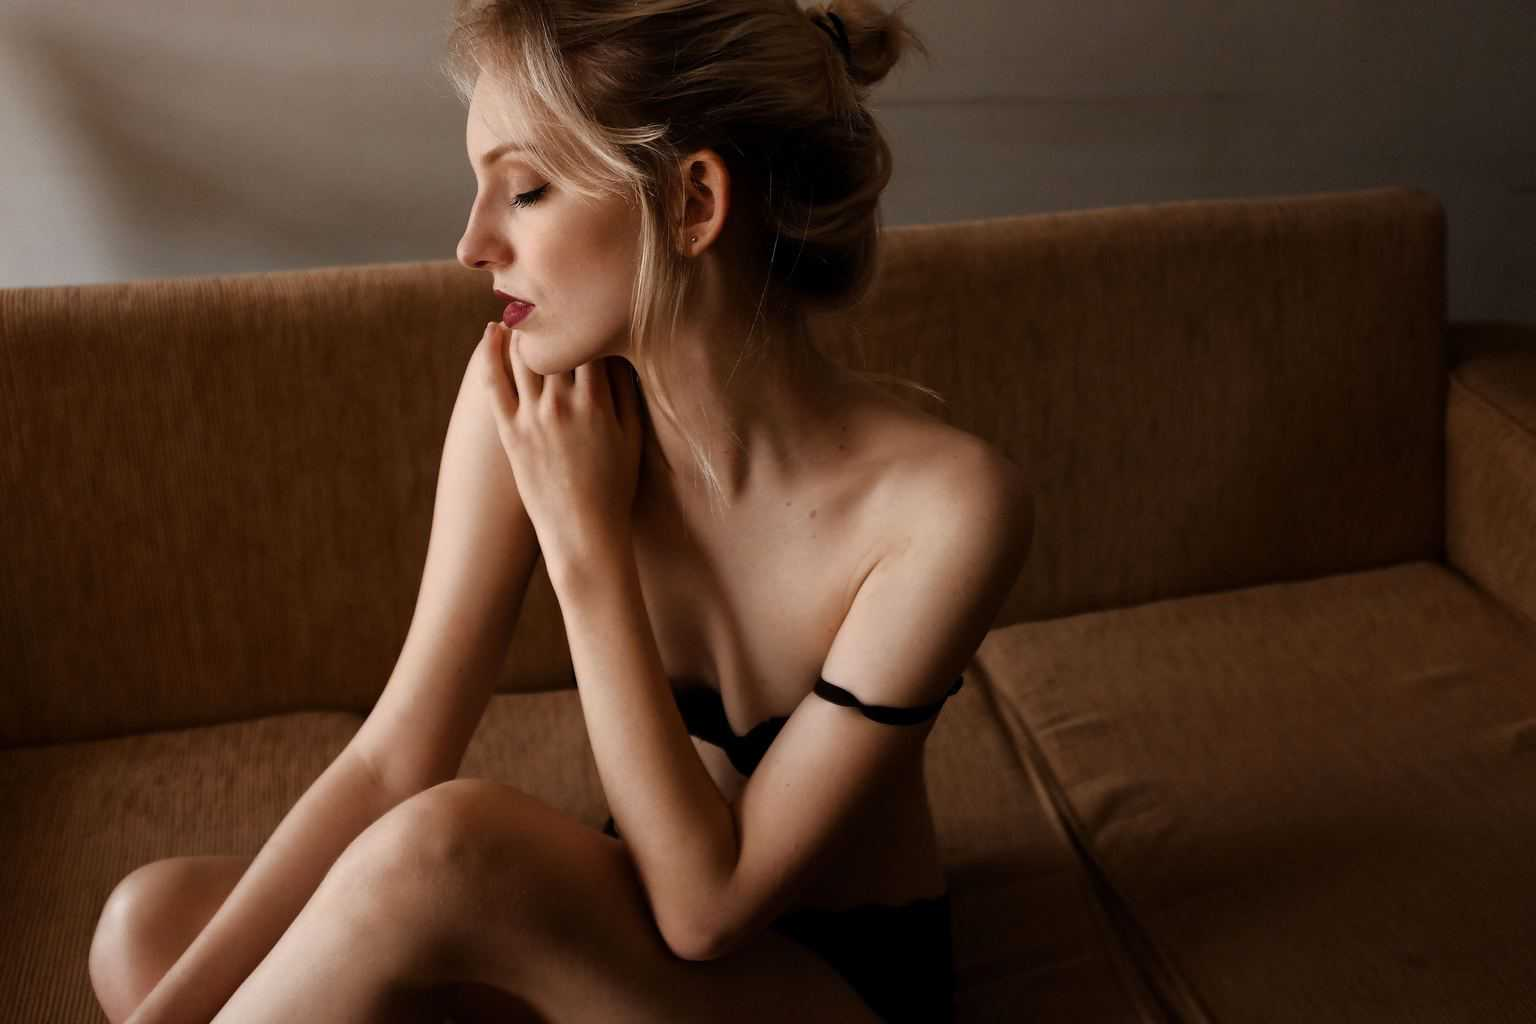 Thin woman sits on a couch while her black bra strap is falling on her arm